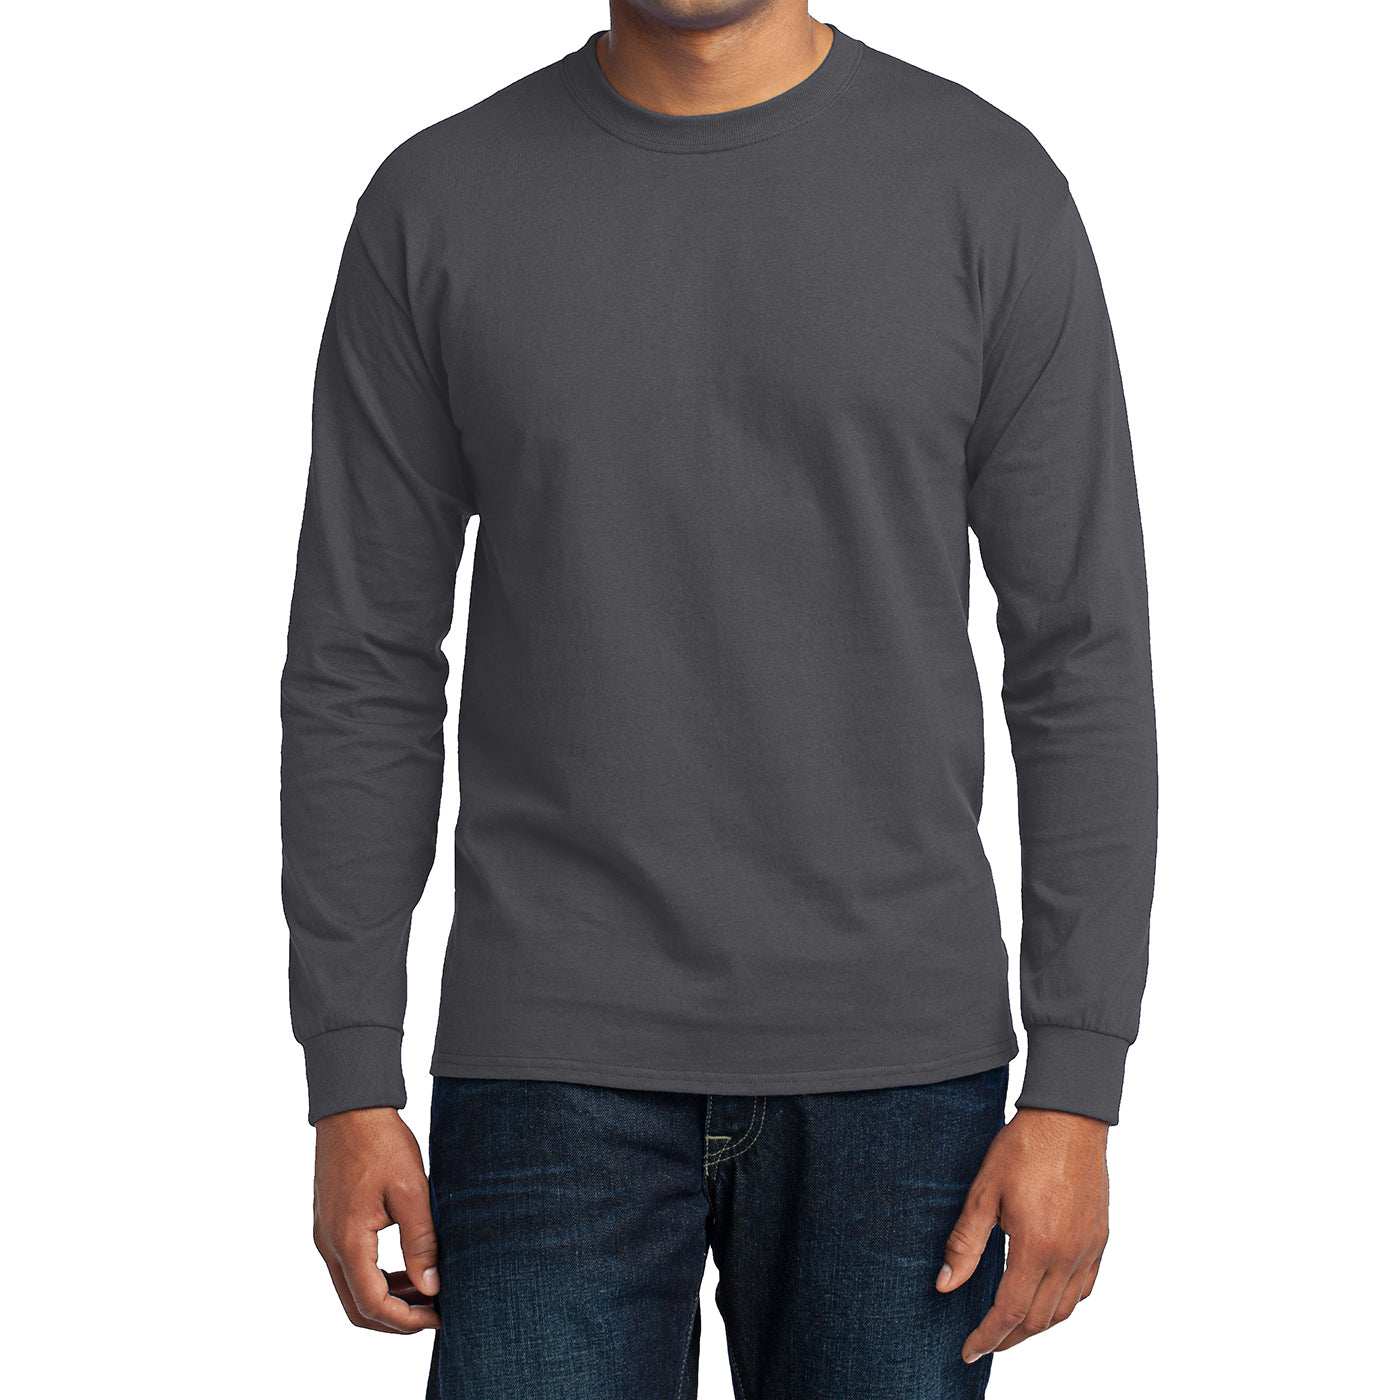 Men's Long Sleeve Core Blend Tee - Charcoal – Front